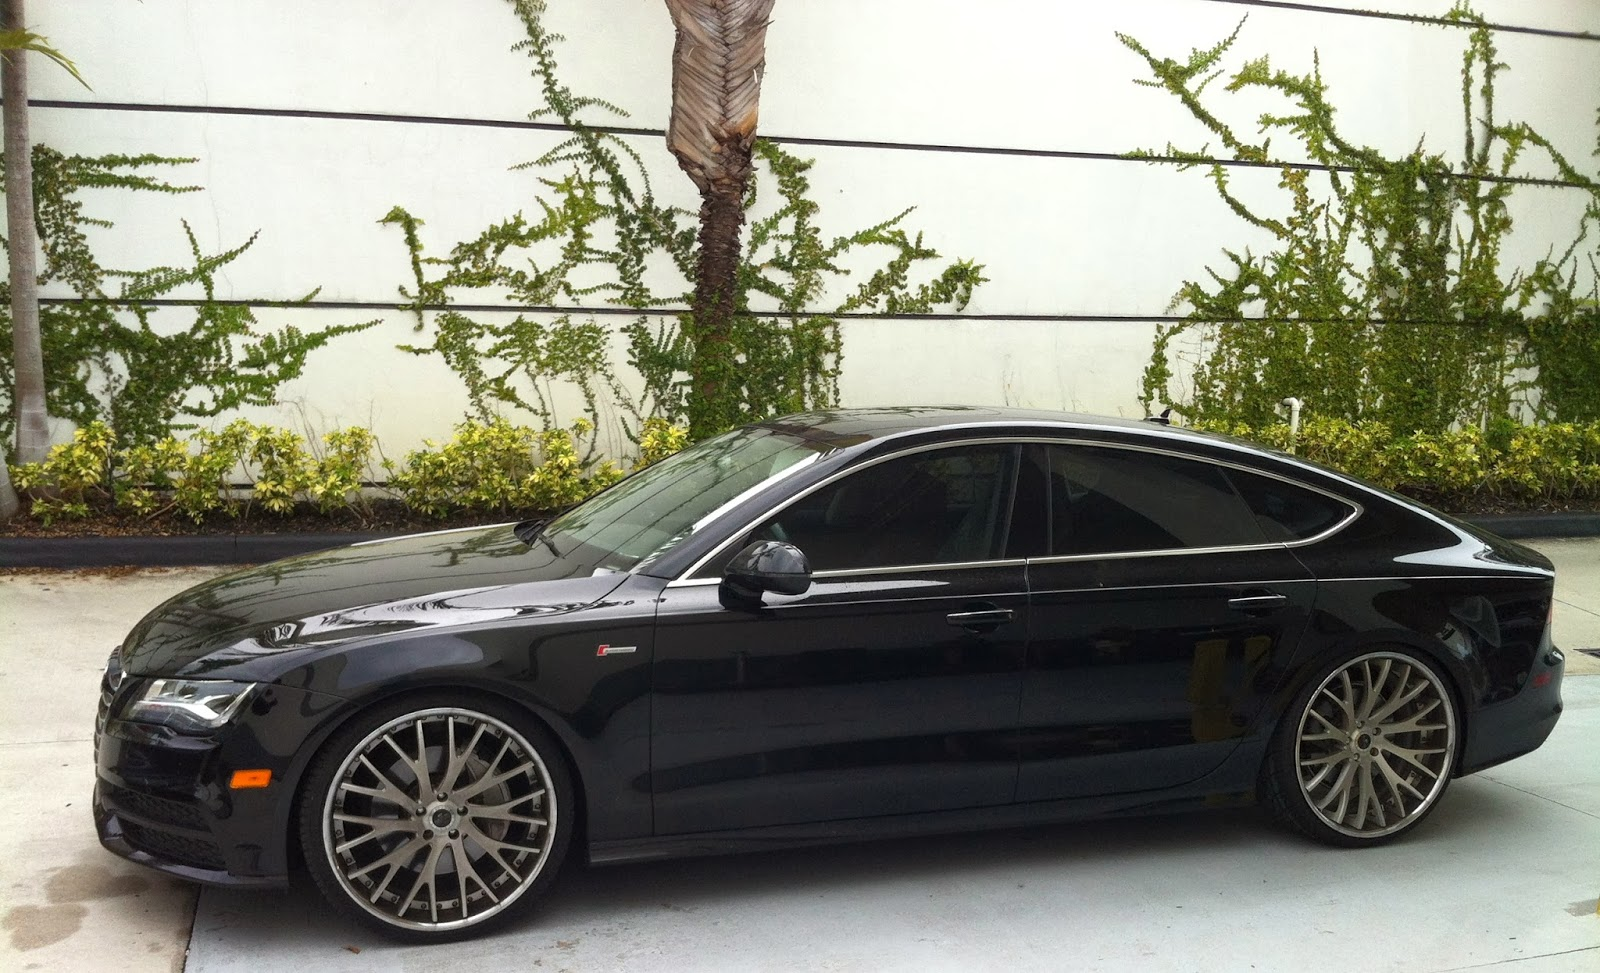 Audi A7 With Savani Rims Exotic Cars On The Streets Of Miami